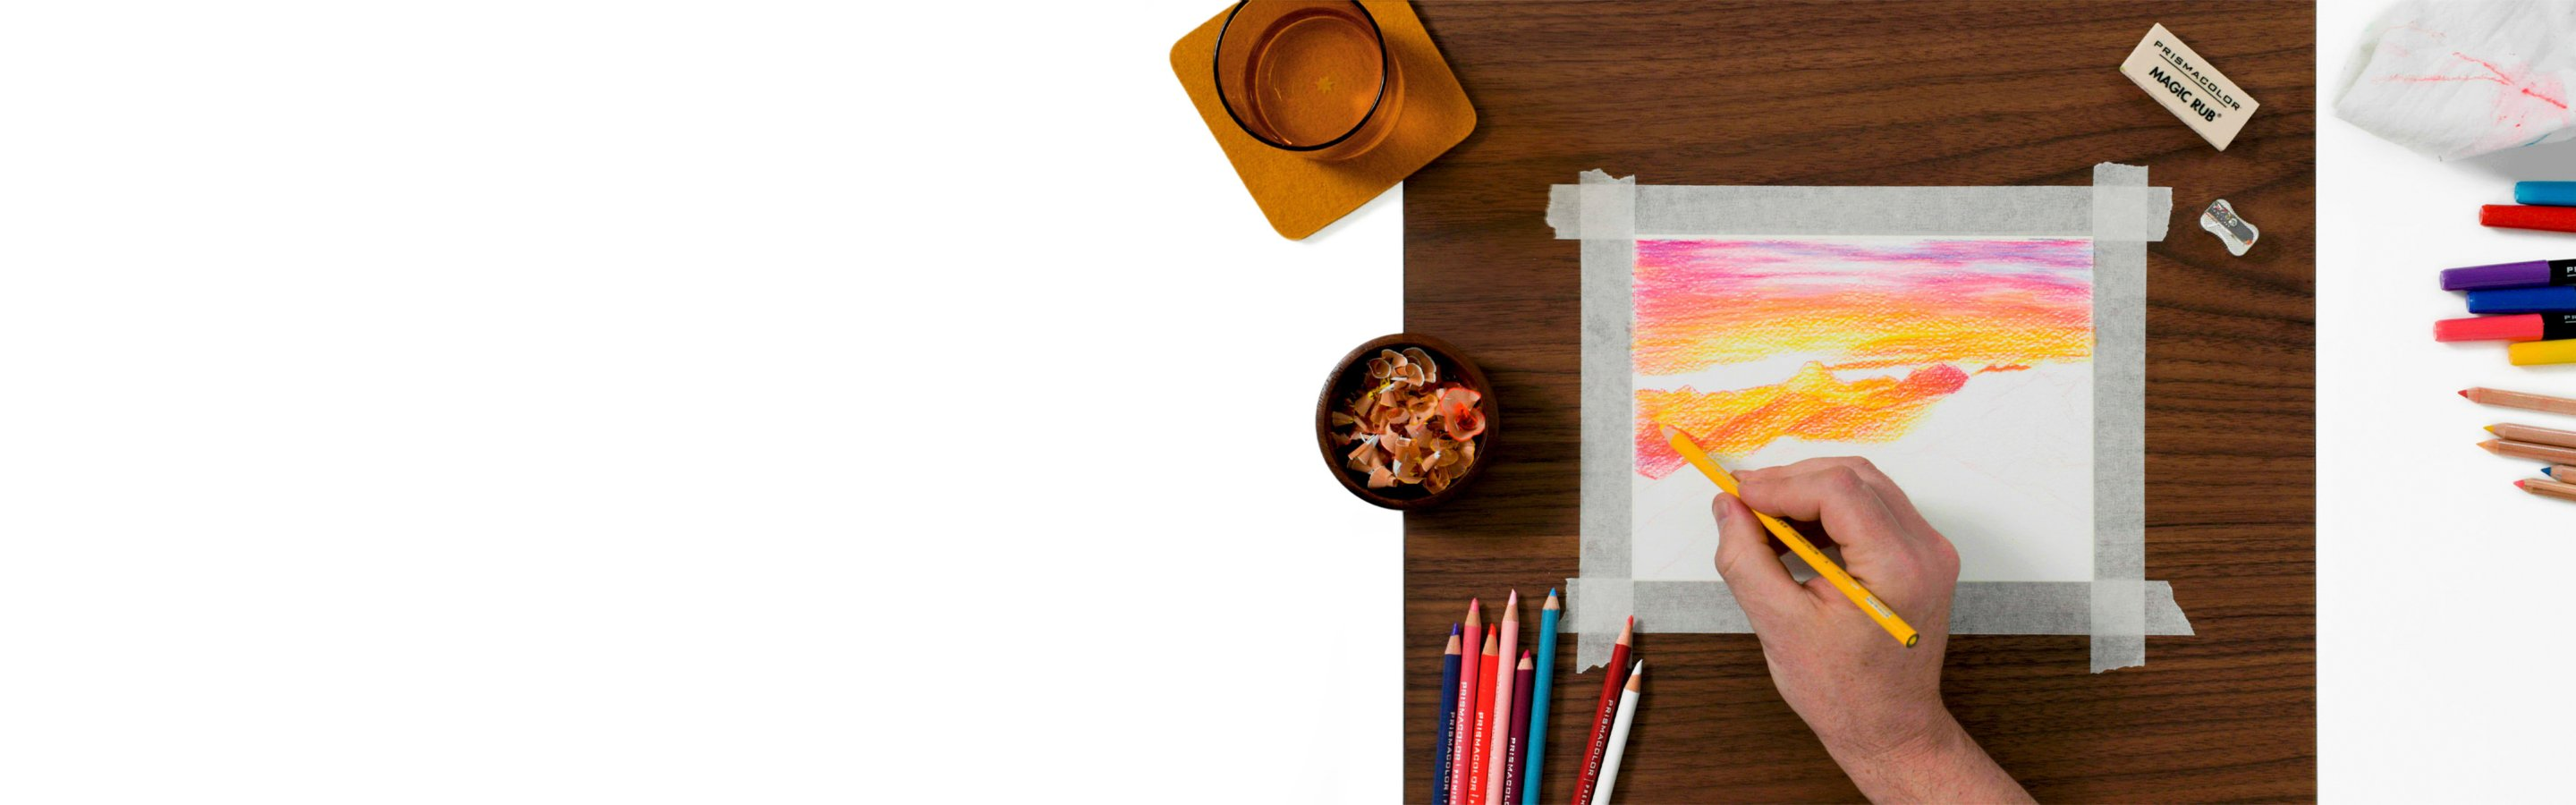 coloring a landscape with colored pencils and other art supplies nearby